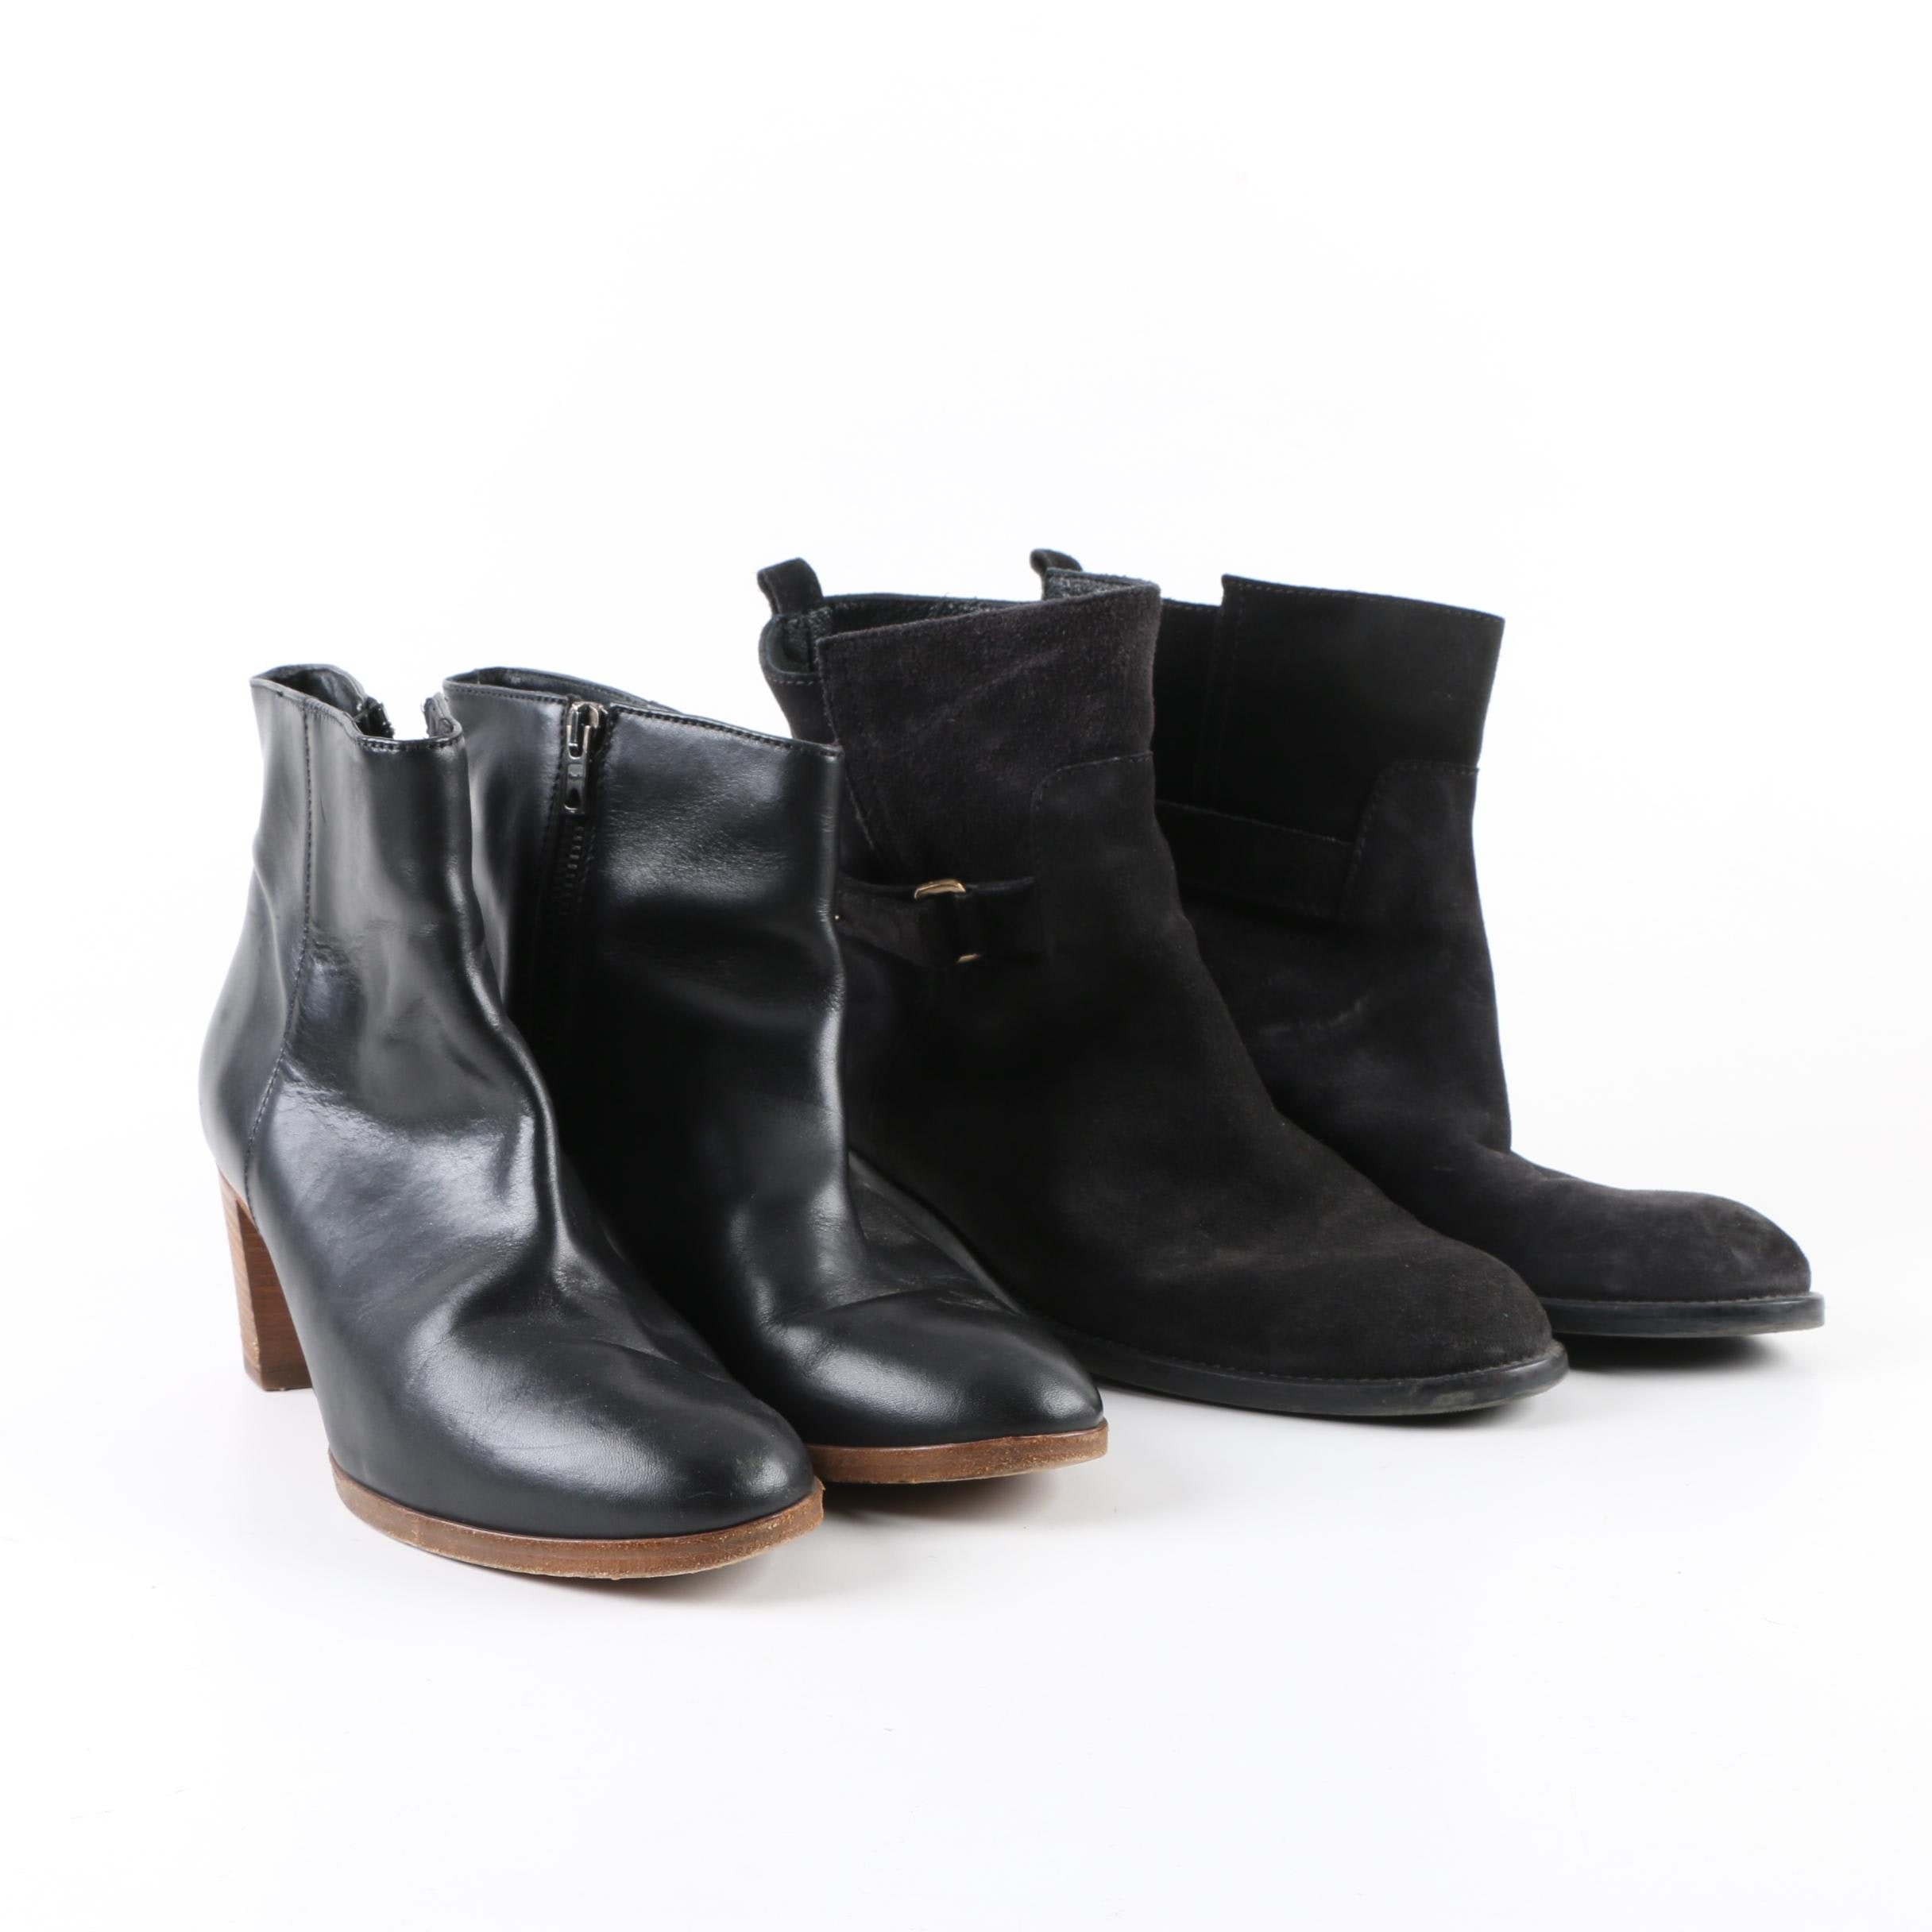 Two Pairs of J. Crew Black Leather Booties